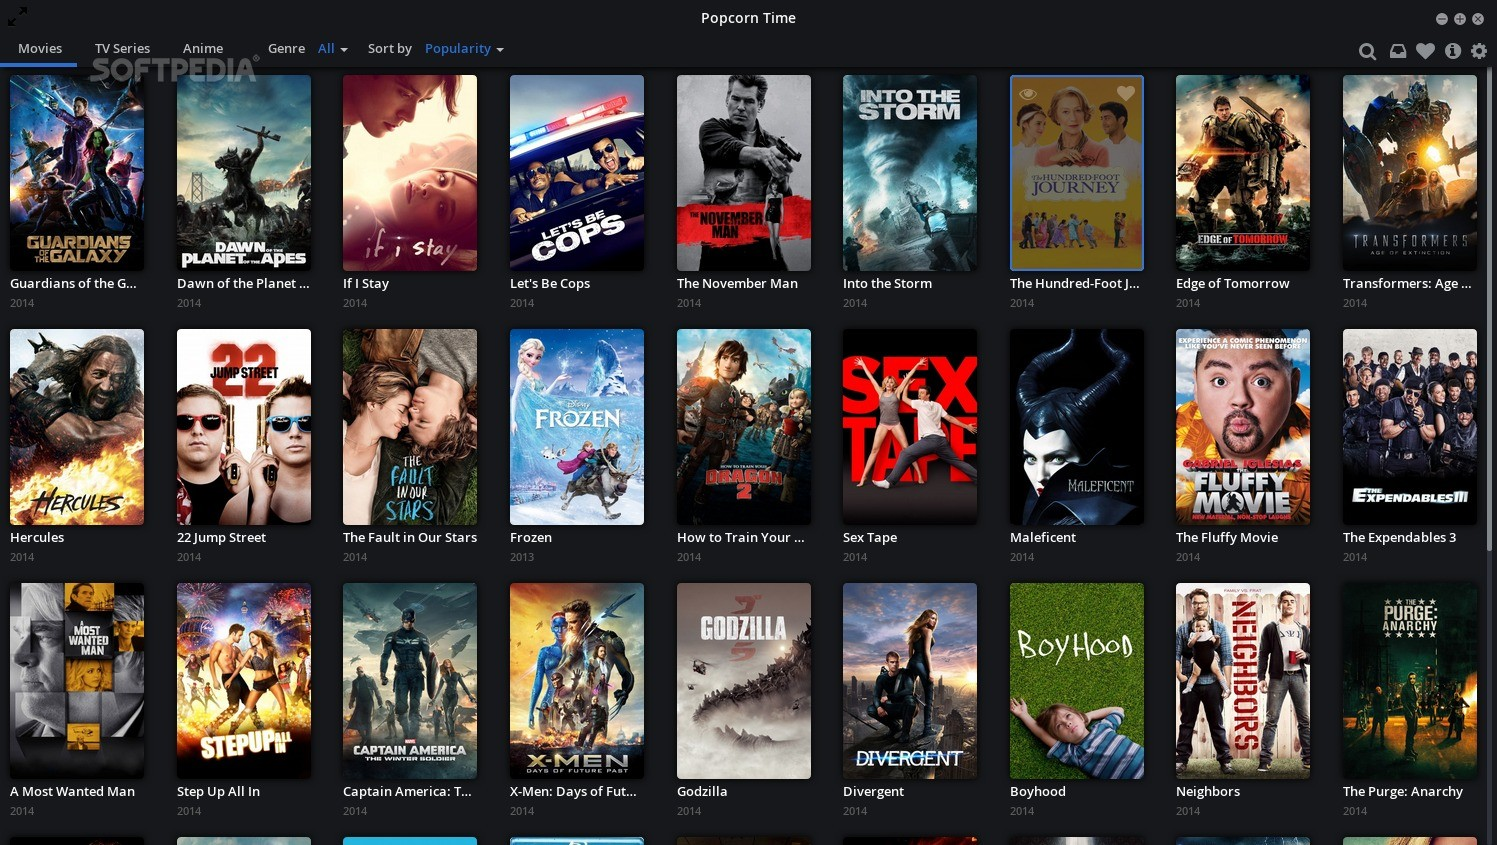 popcorn time 0.3.7 windows